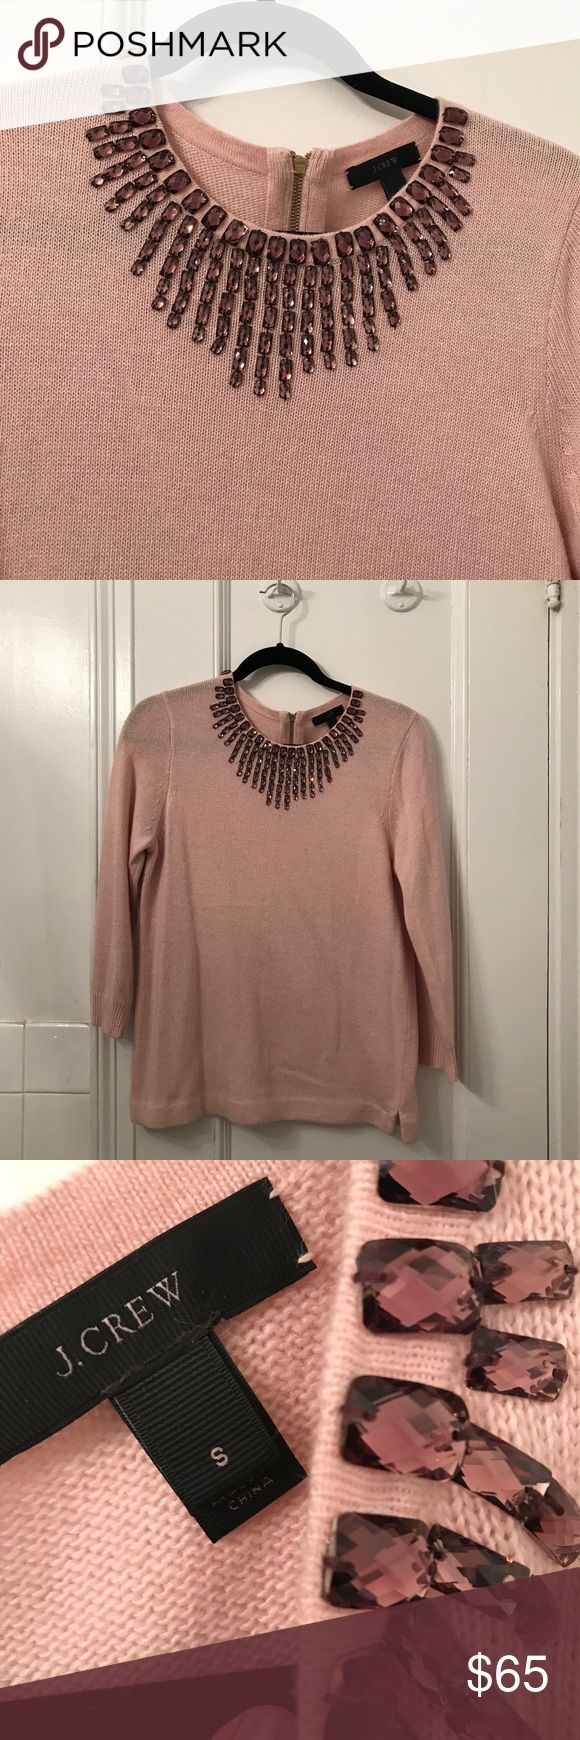 J. Crew Blush Pink Embellished Sweater Small Blush pink 3/4 sleeve sweater with stone embellishments. Gold tone zipper in back. Has rabbit fur so it's super soft. Dry clean only J. Crew Sweaters Crew & Scoop Necks